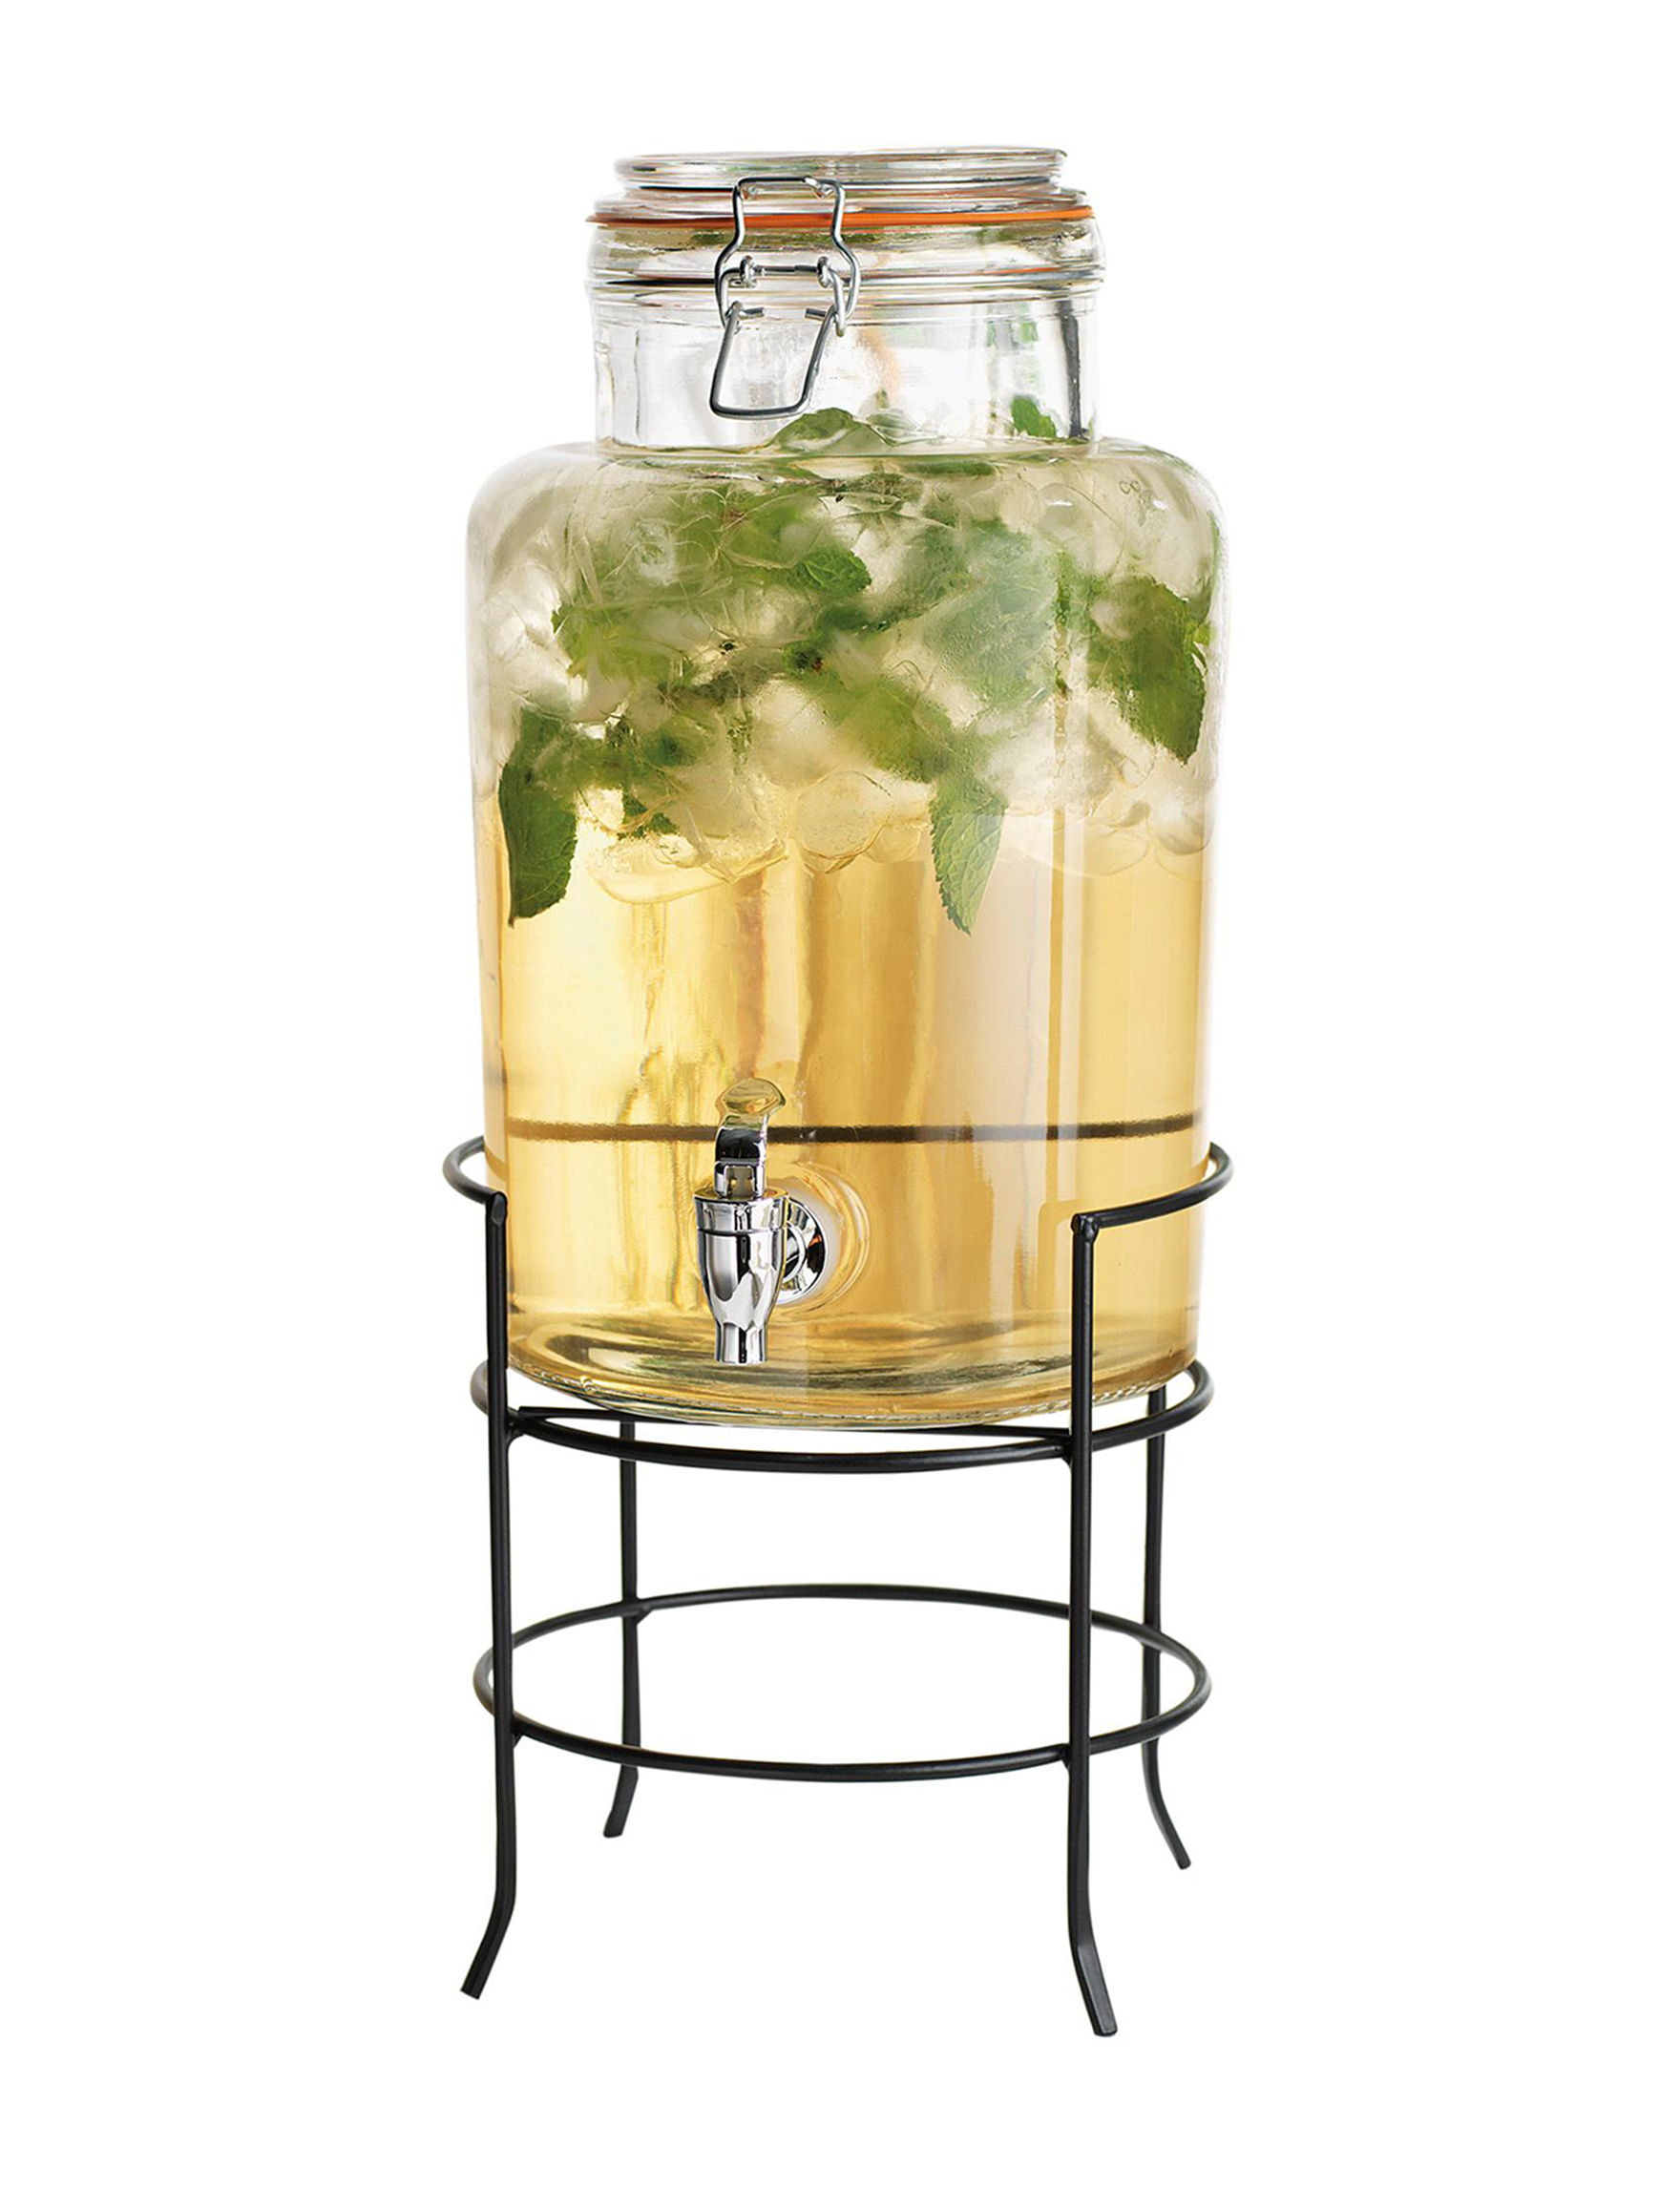 Home Essentials Clear Beverage Dispensers & Tubs Drinkware